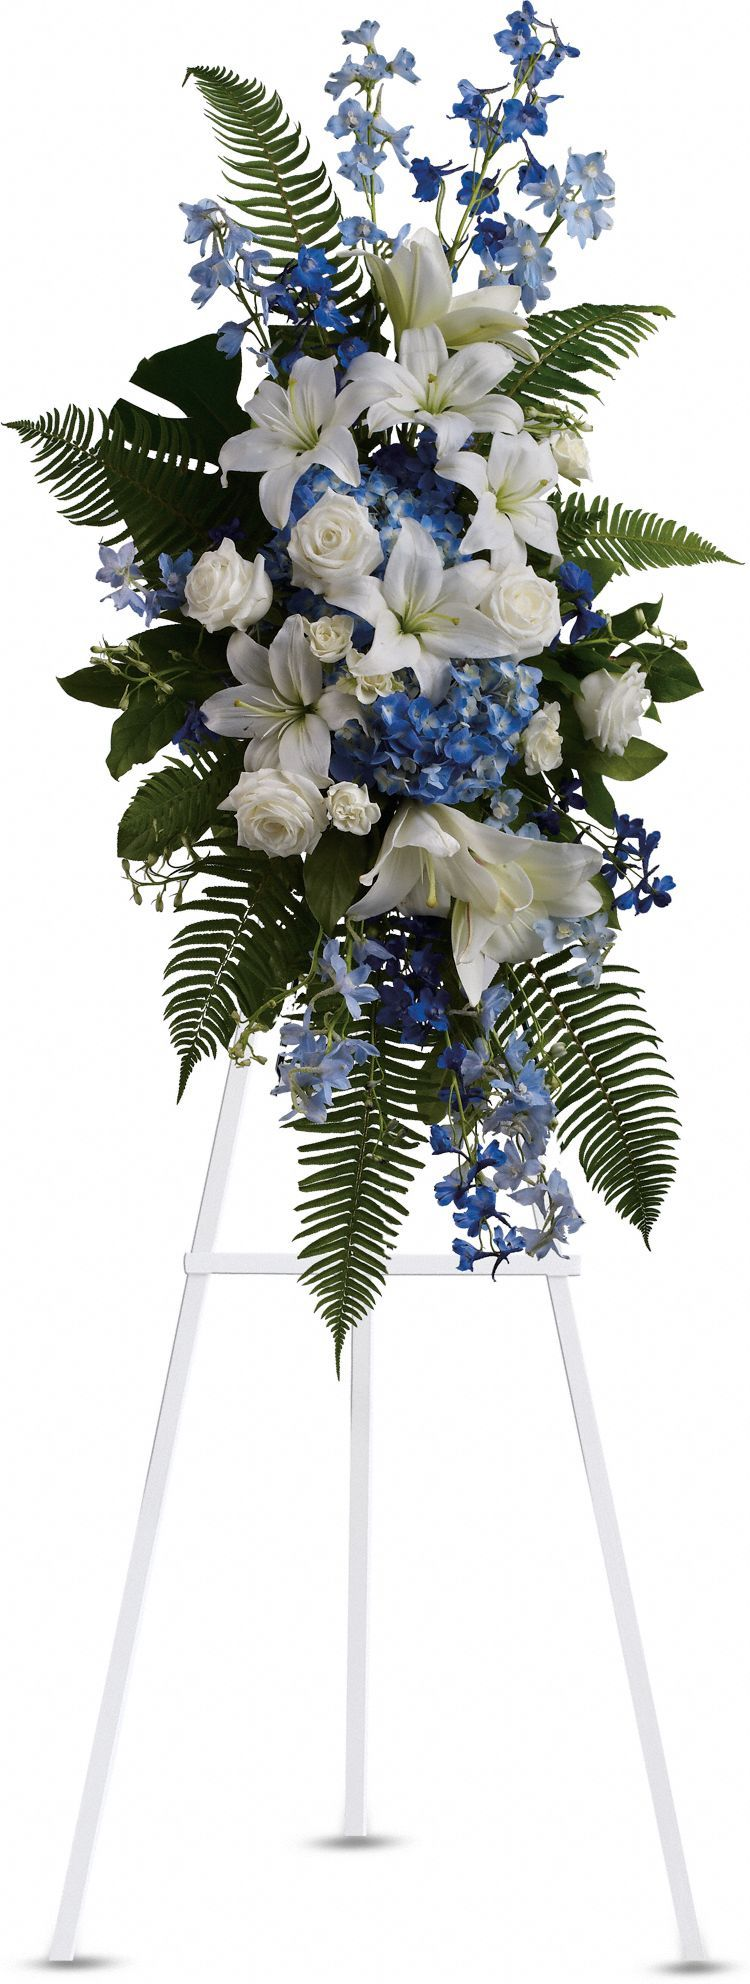 Pinner saidocean breeze spray i am going to create this tomorrow i am going to create this tomorrow for a funeral visitation in purple and white i hope i can pull off the same artistry as te telegflora bouquet izmirmasajfo